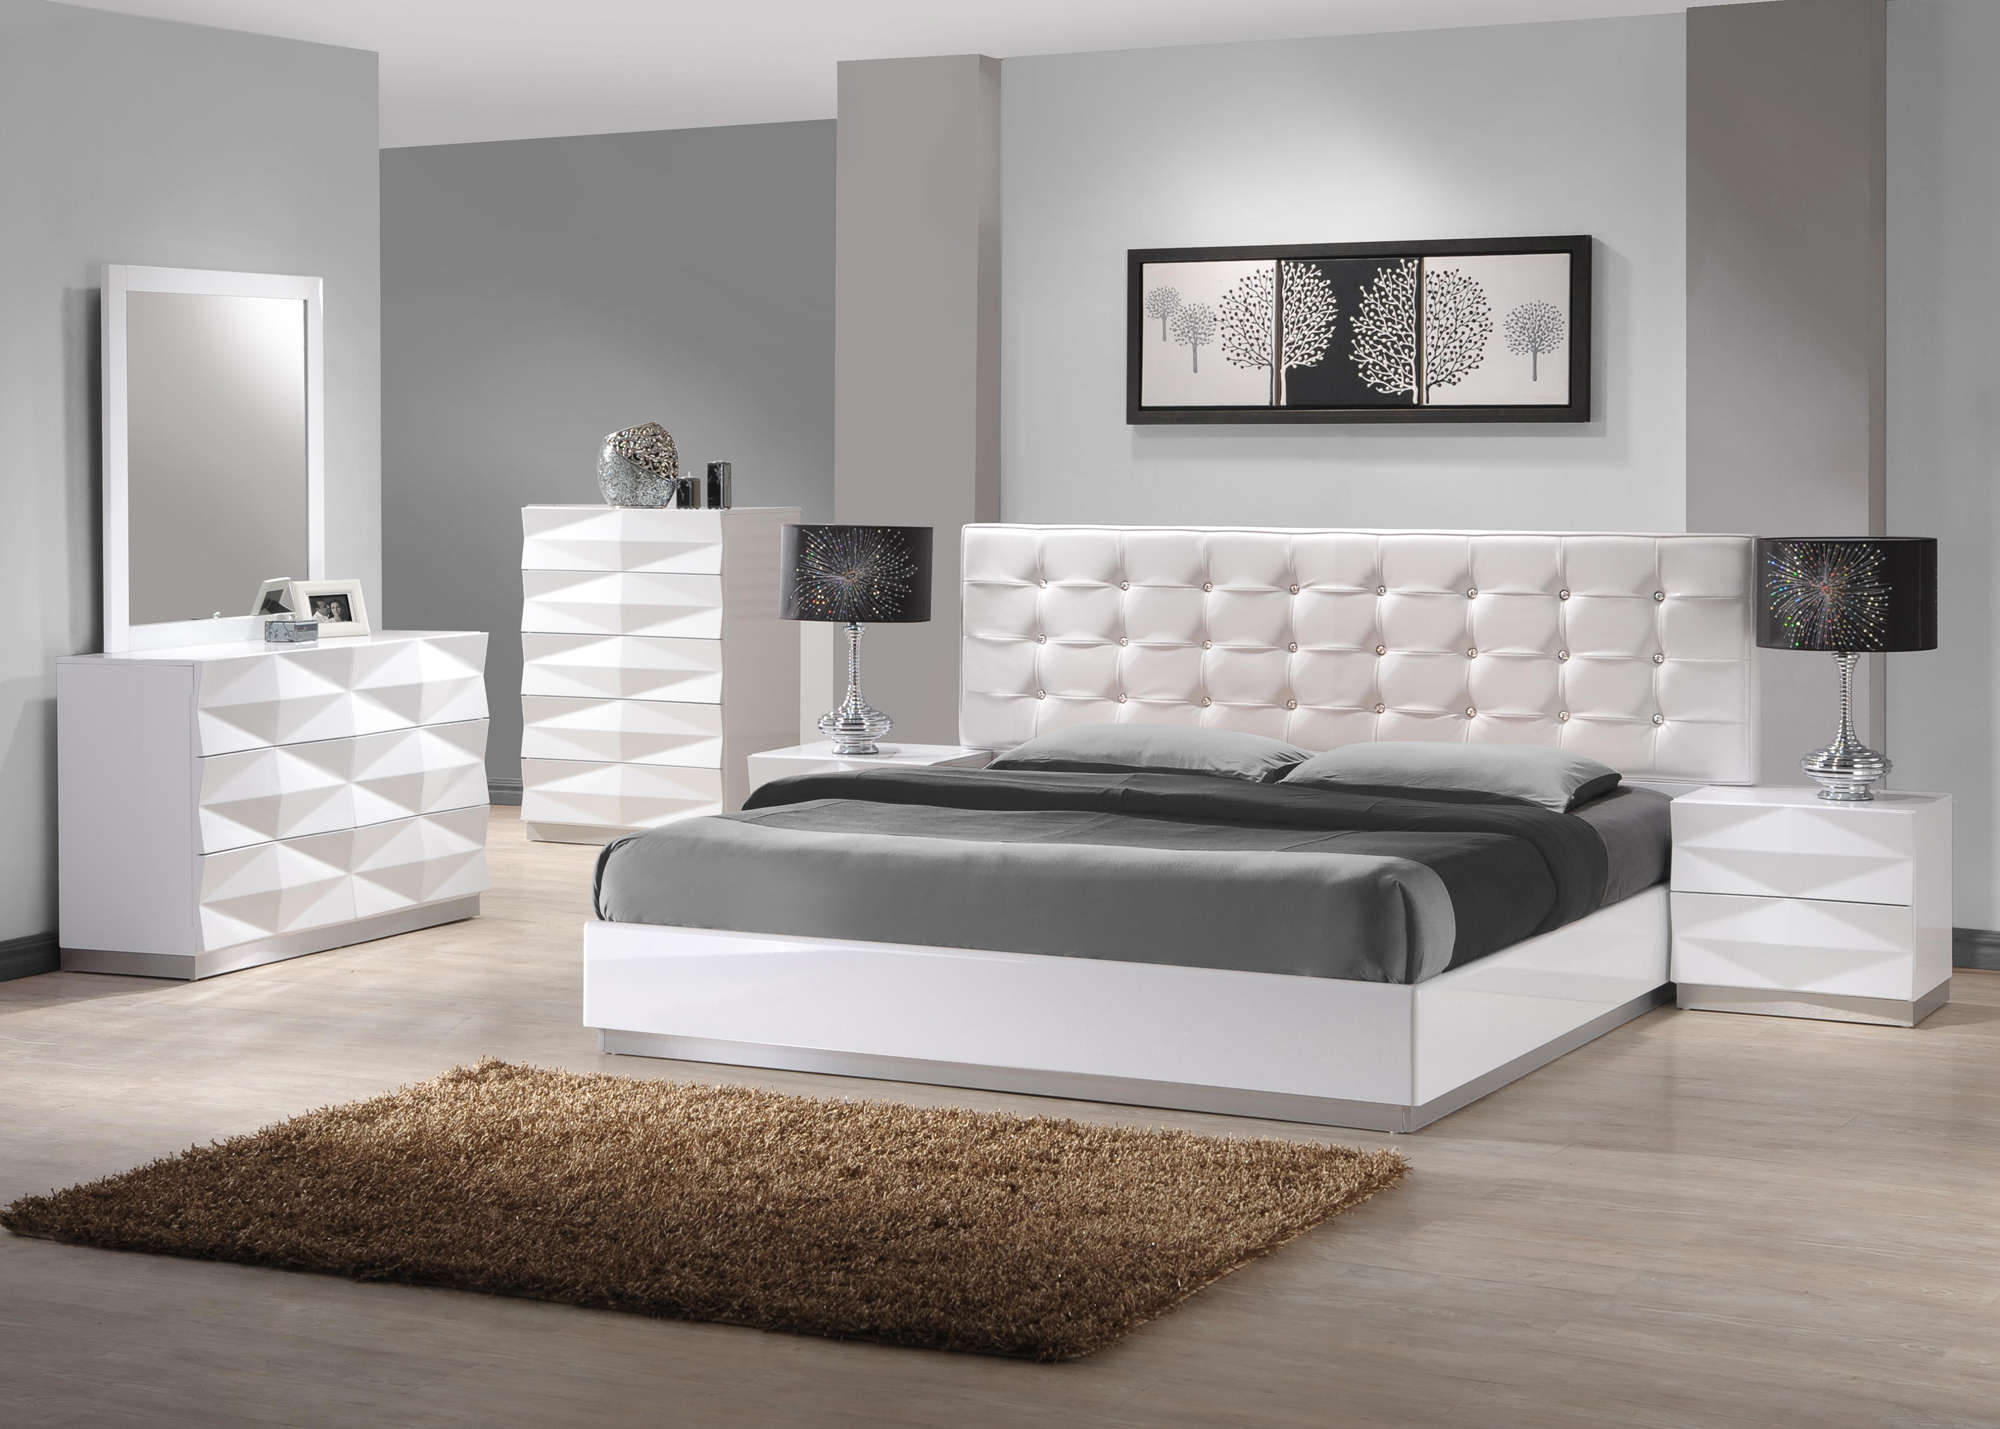 White Furniture Bedroom Ideas Eo Furniture with regard to 11 Clever Tricks of How to Make White Modern Bedroom Ideas